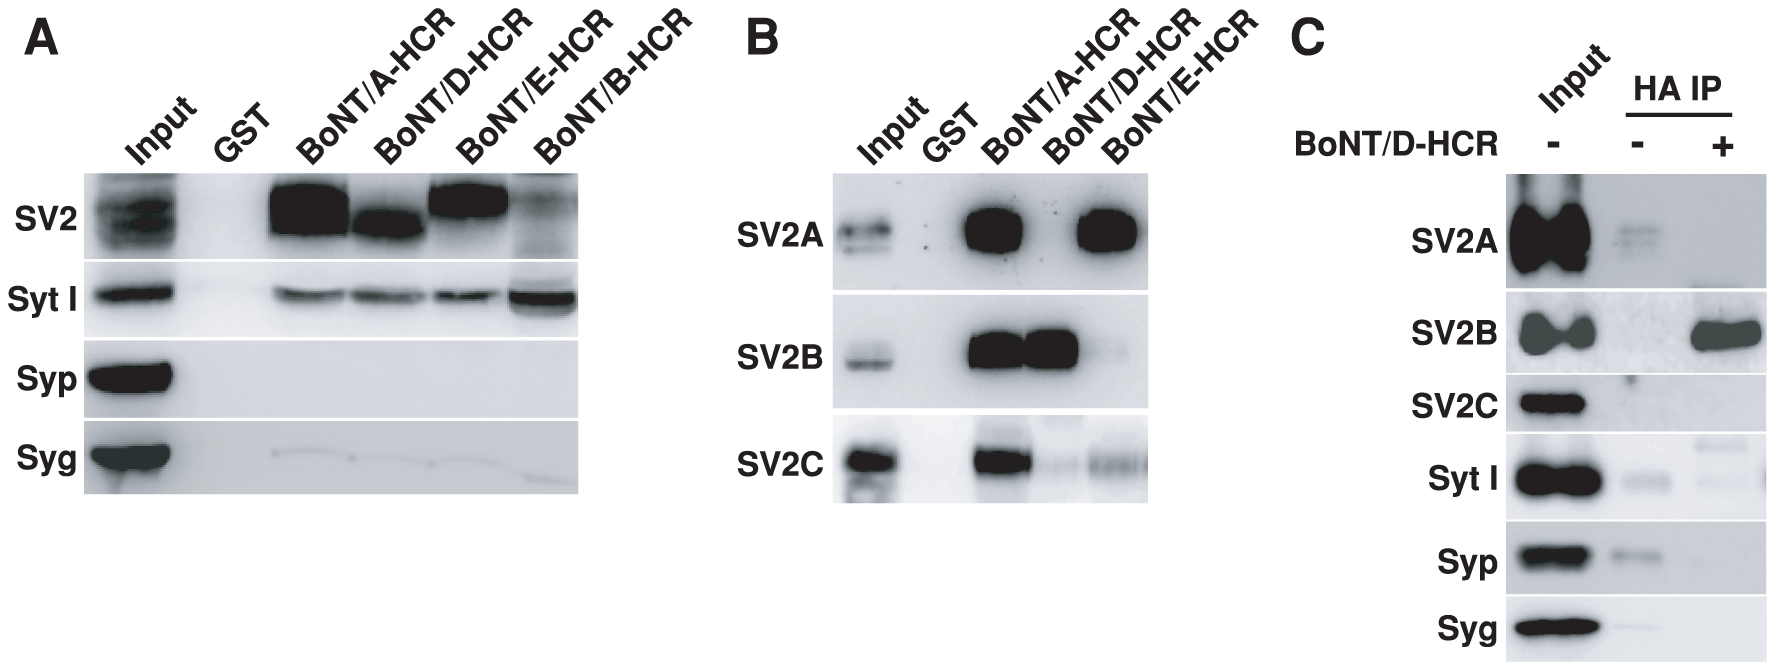 BoNT/D-HCR can pull-down and co-immunoprecipitate SV2 from rat brain detergent extracts.